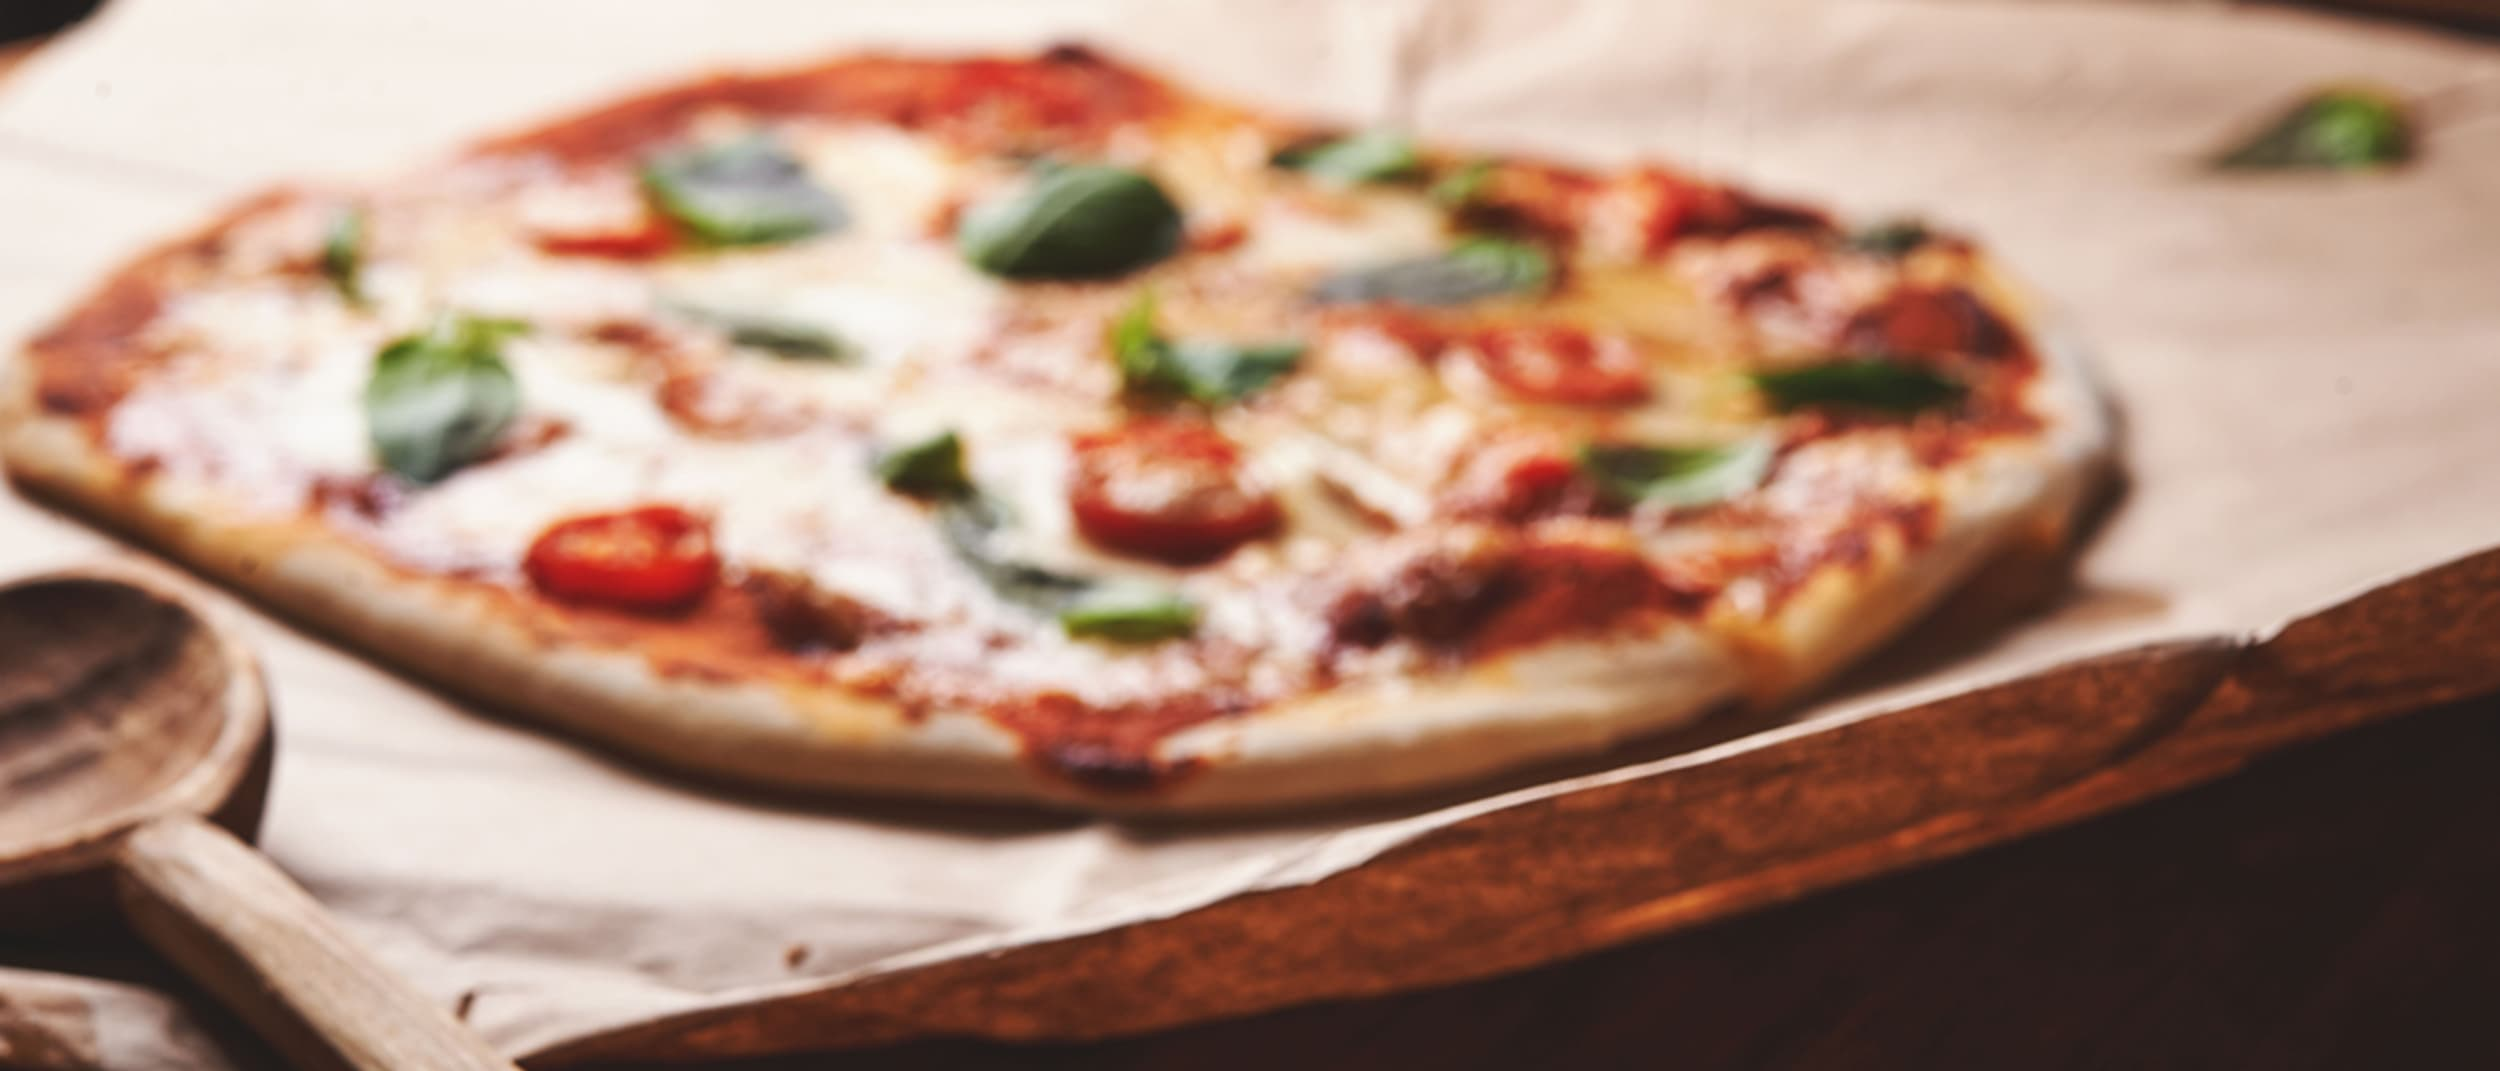 Kids' pizza cooking classes at Vapiano